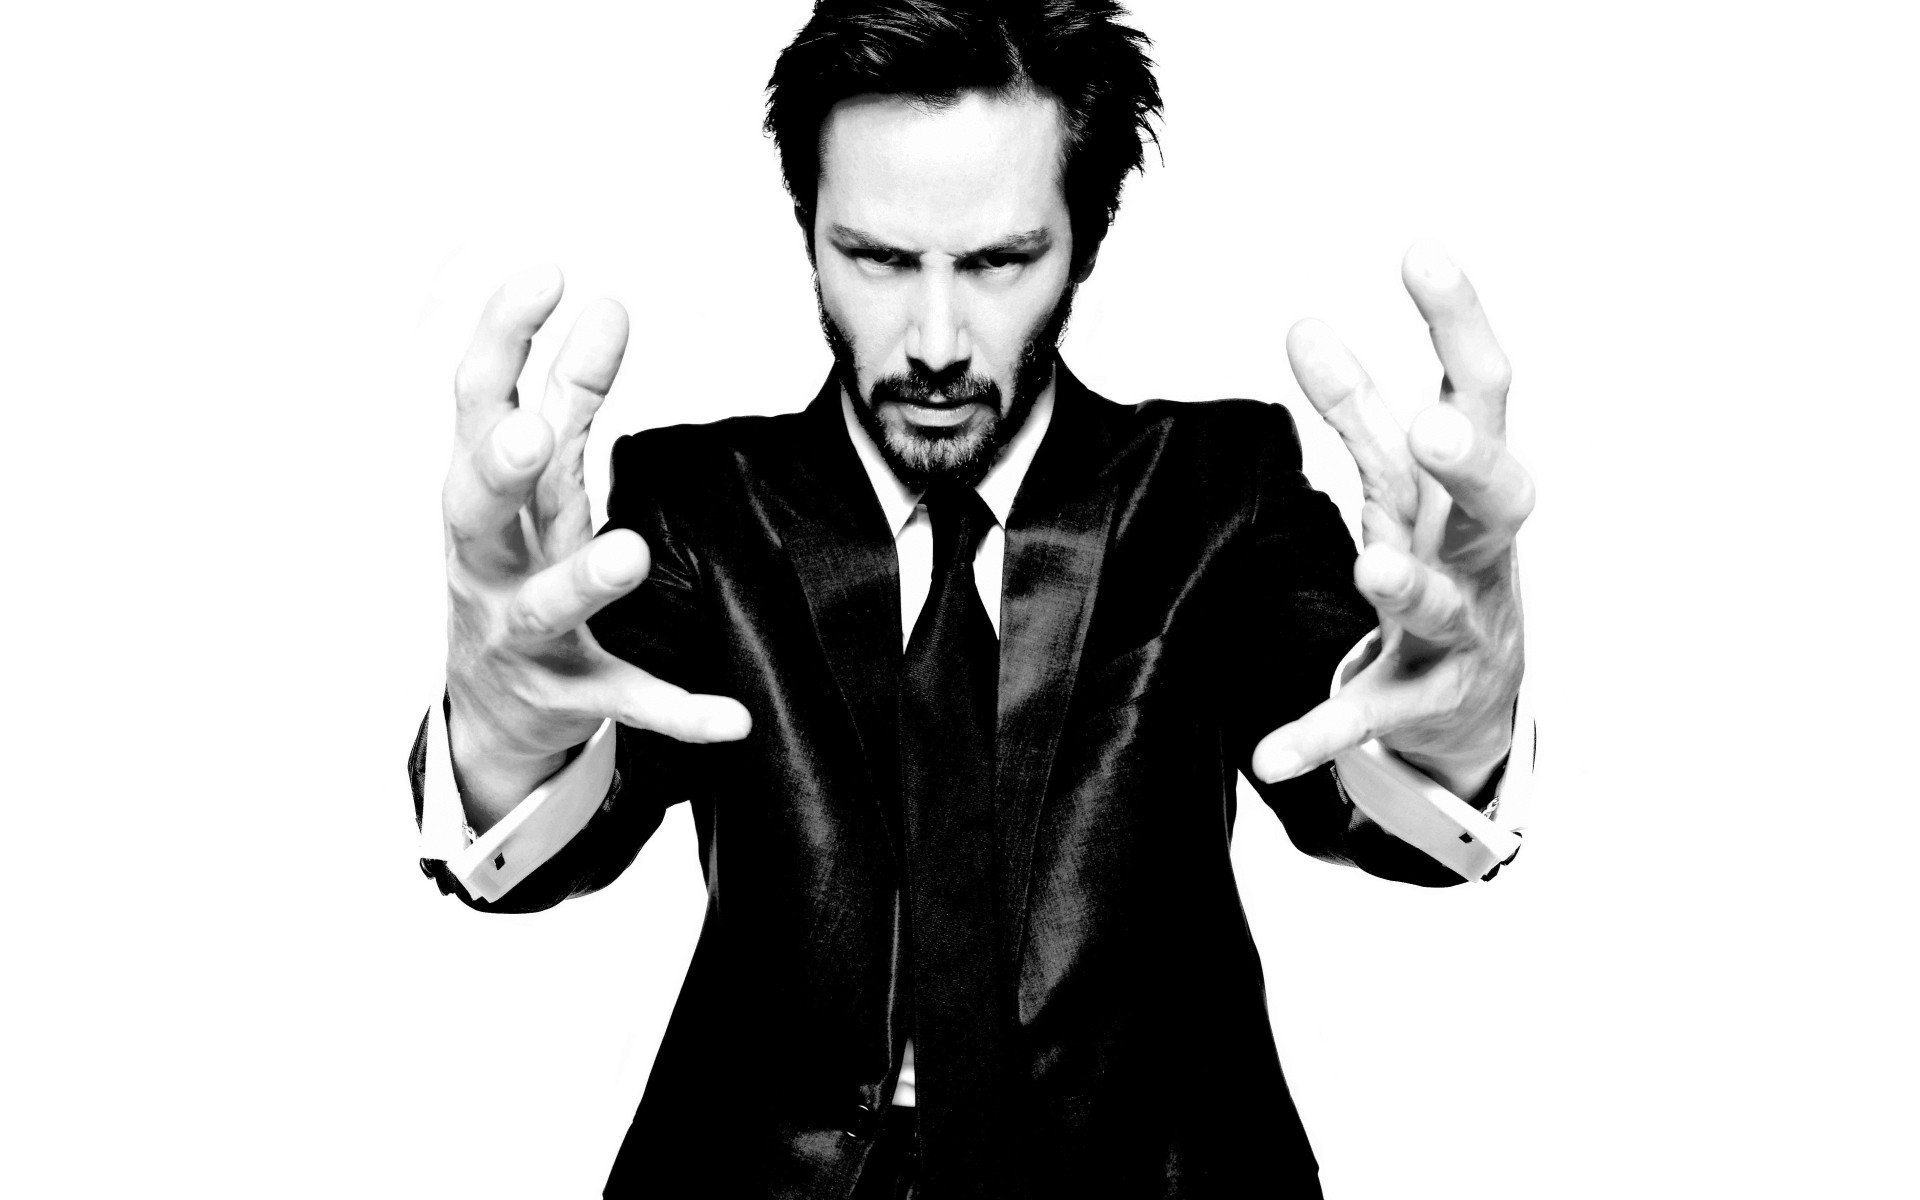 Black and white suit hands men celebrity keanu reeves for Black and white pictures of celebrities